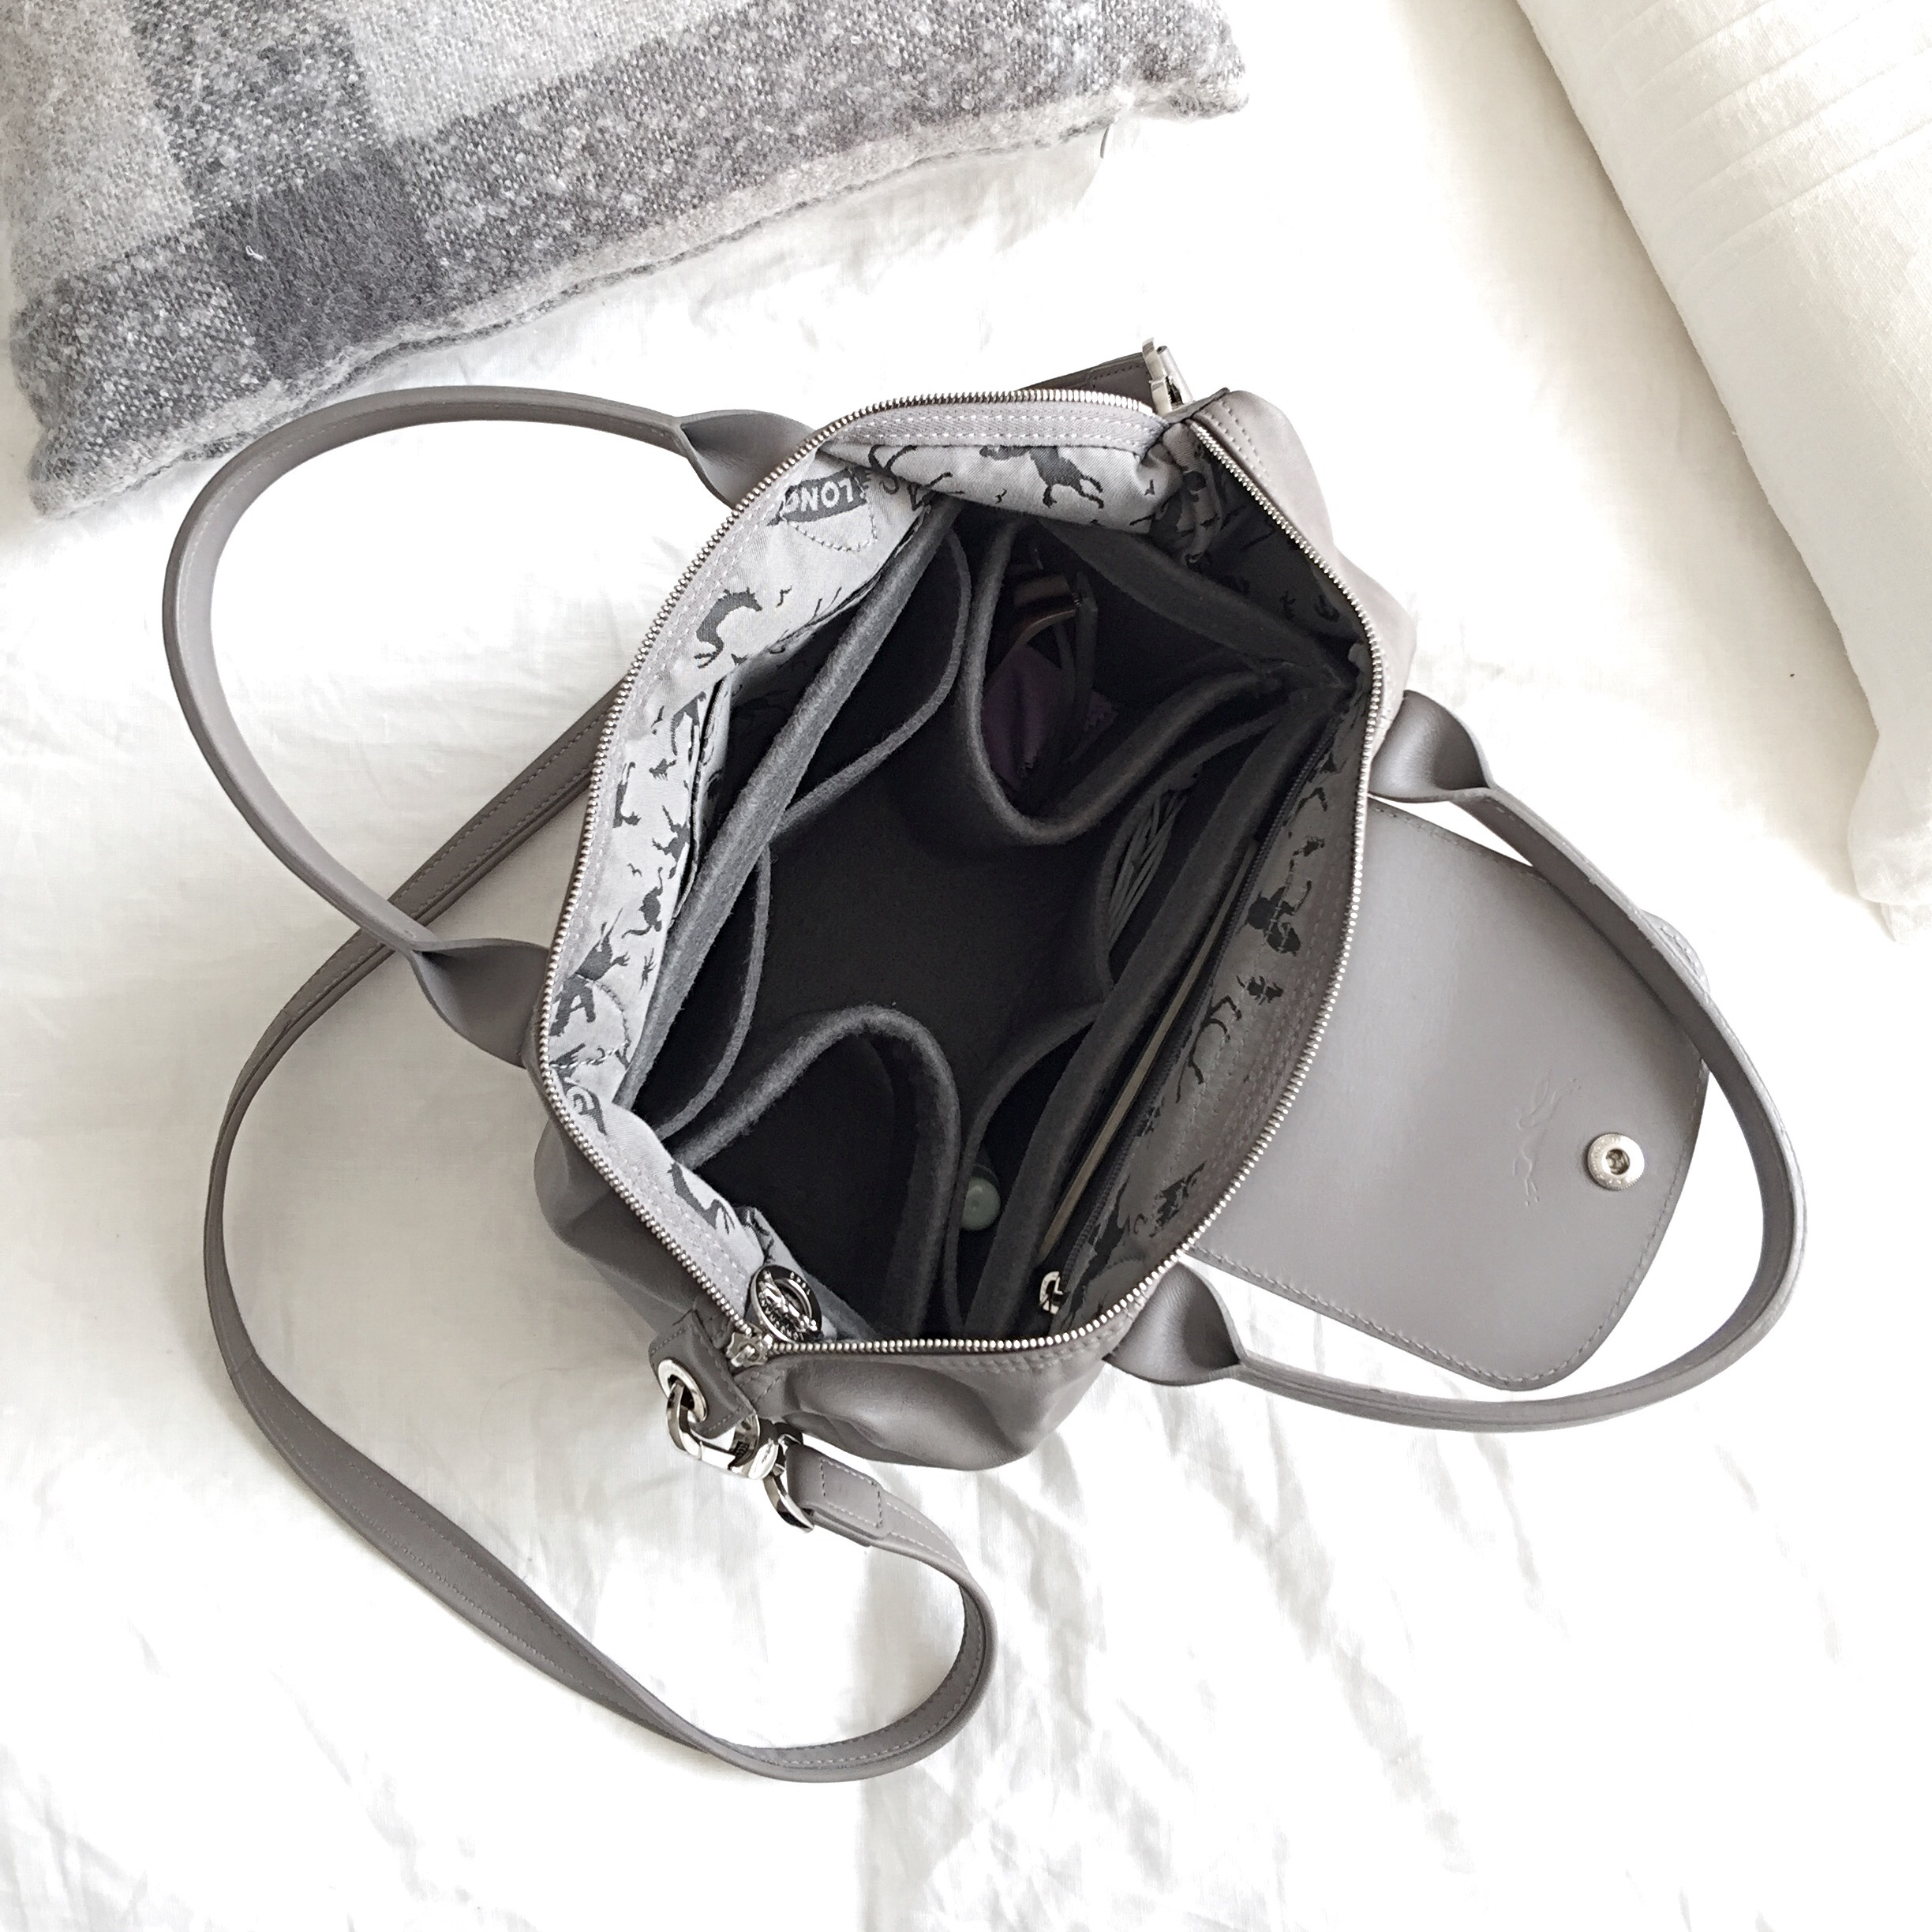 longchamp le pliage cuir + originalclub organiser (product review ... f909a1dc0e41c